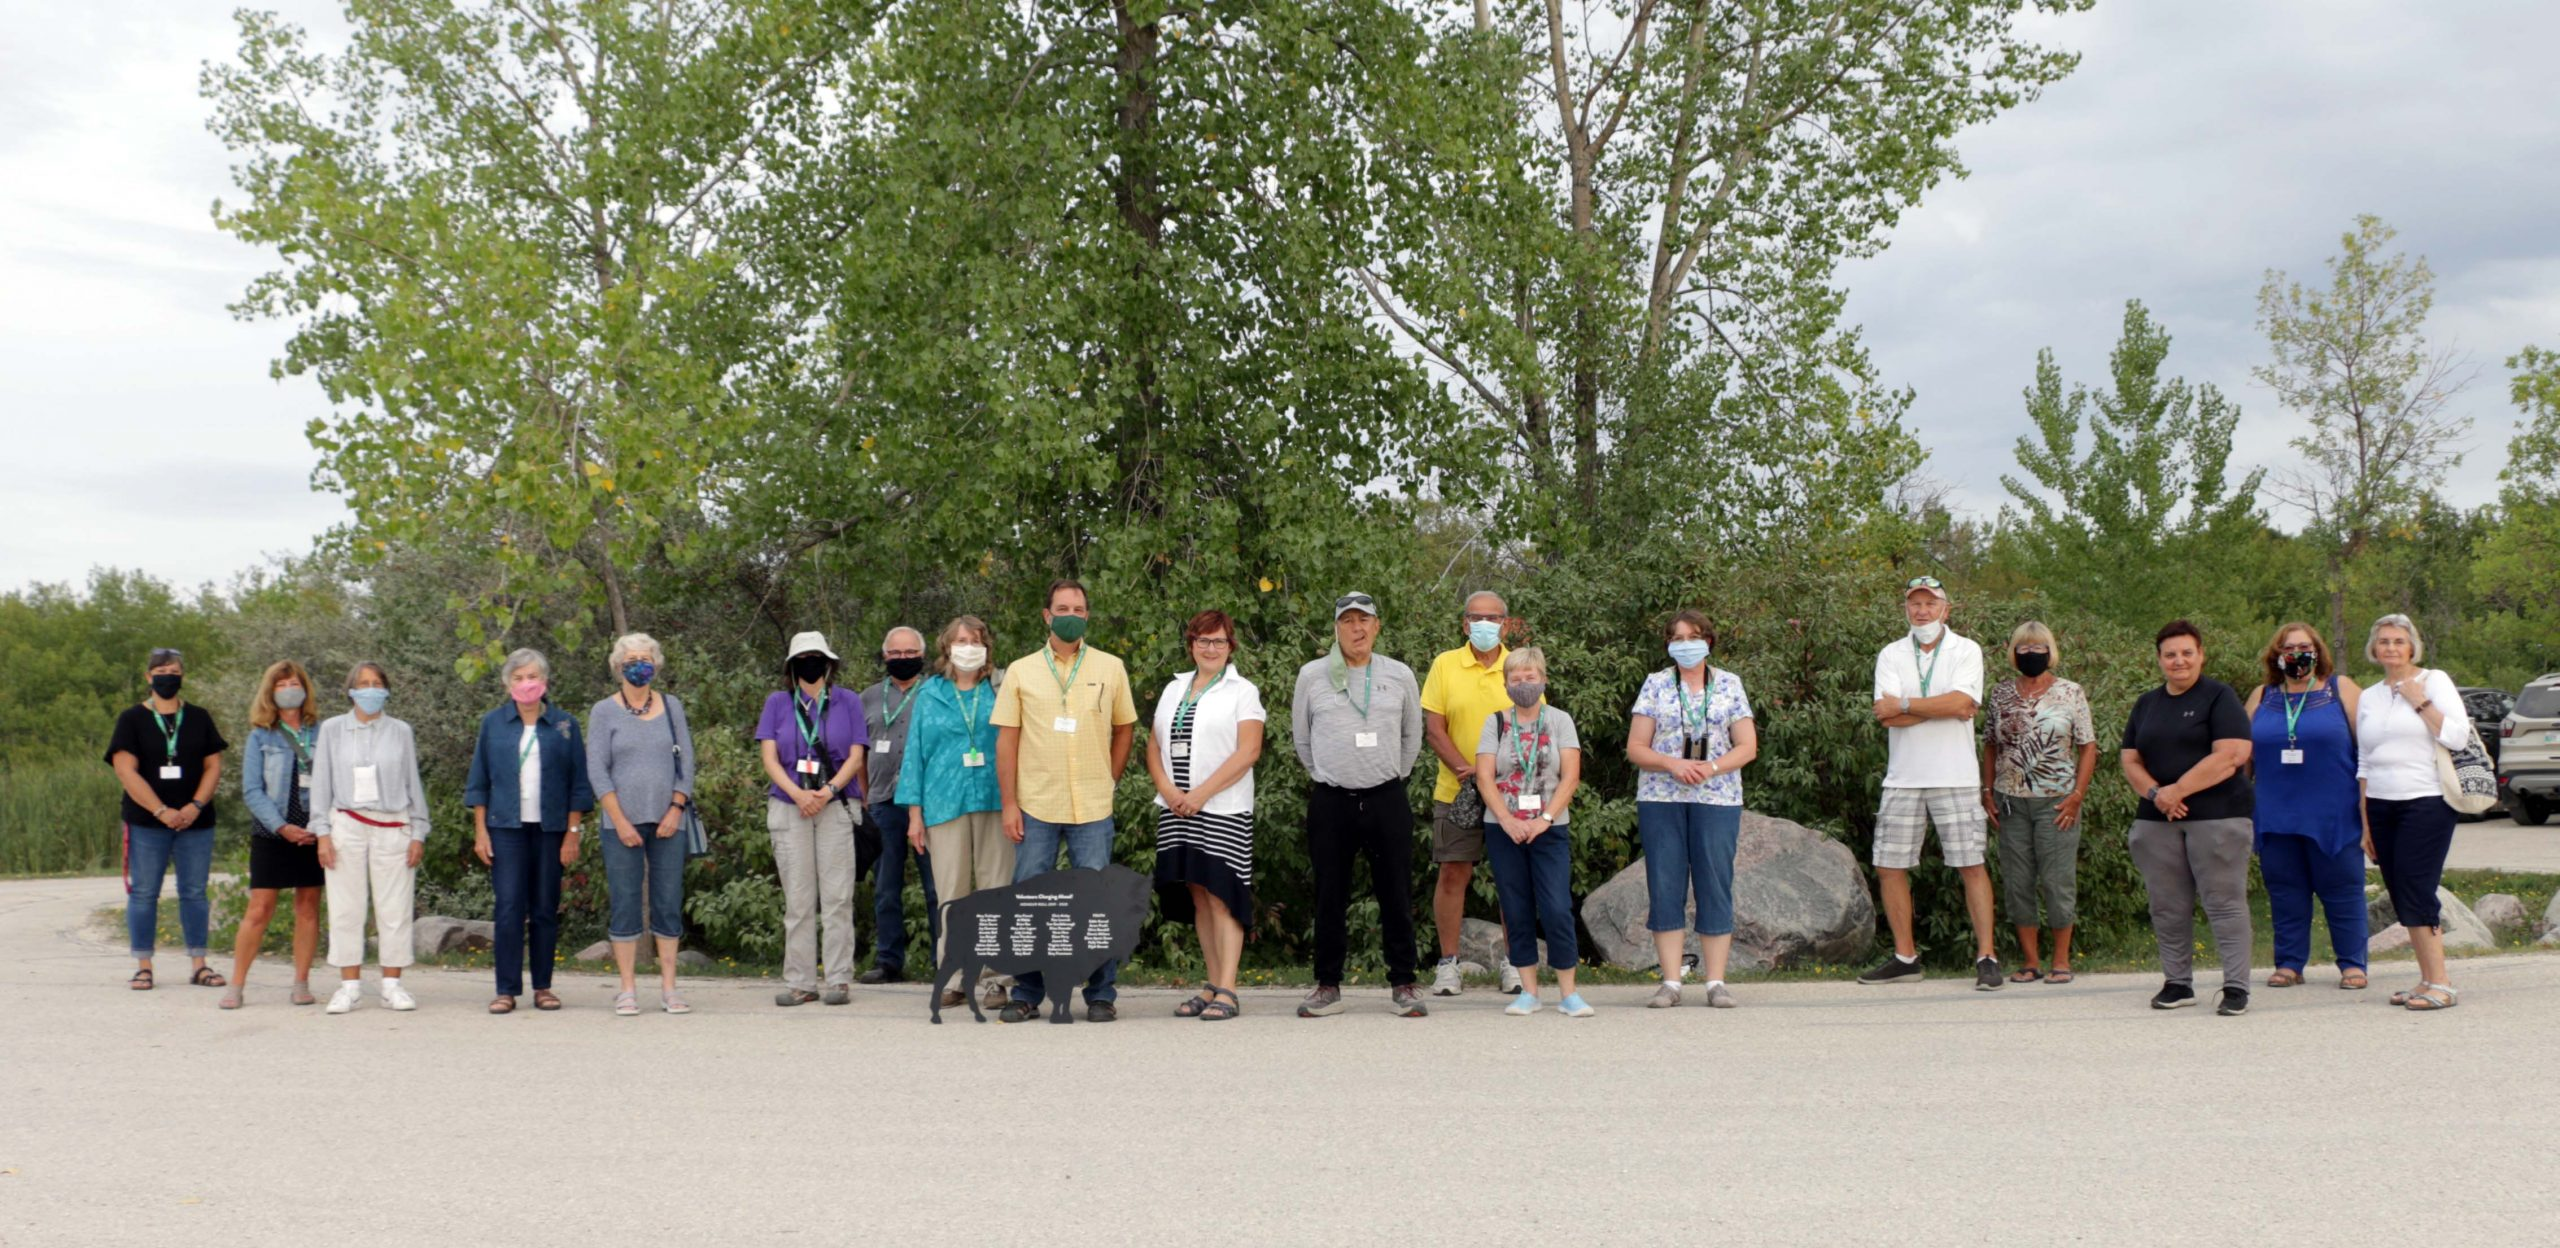 A group of volunteers who donated over 100 hours of their time stand together side by side.